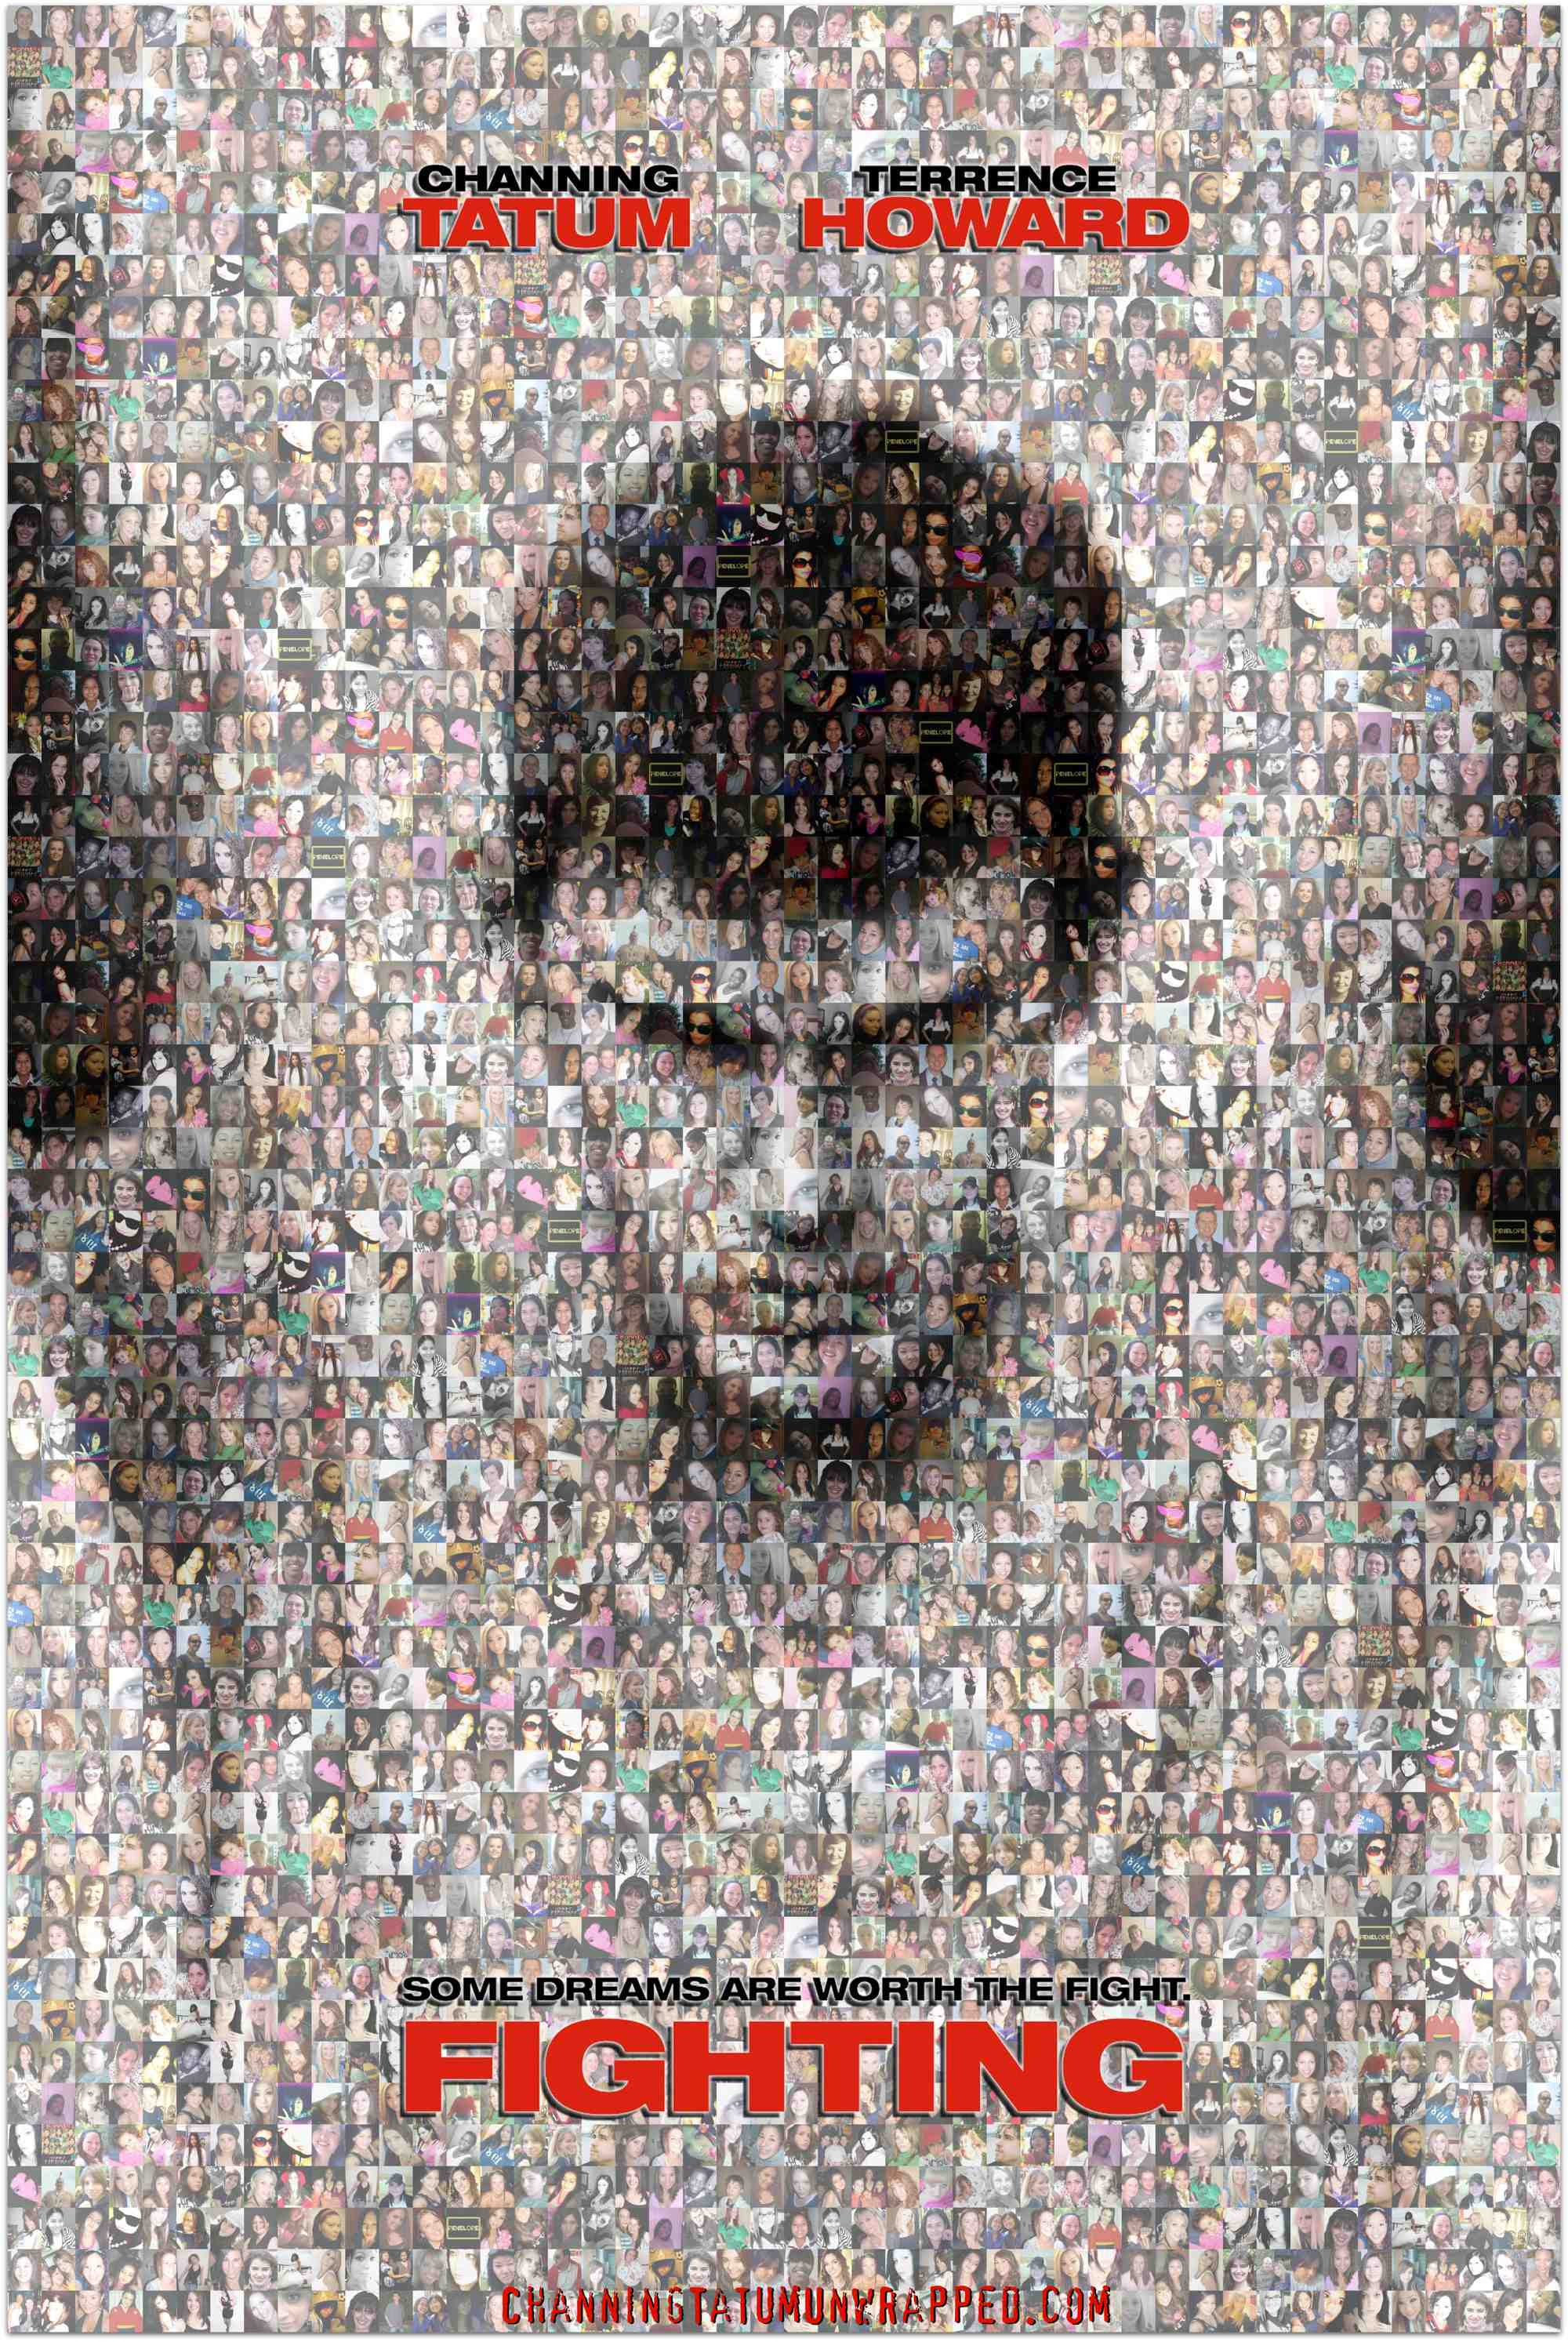 CTU Exclusive: Channing Tatum 2009 Birthday Gift from Channing Tatum Unwrapped and Its Readers (Photo Mosaic)